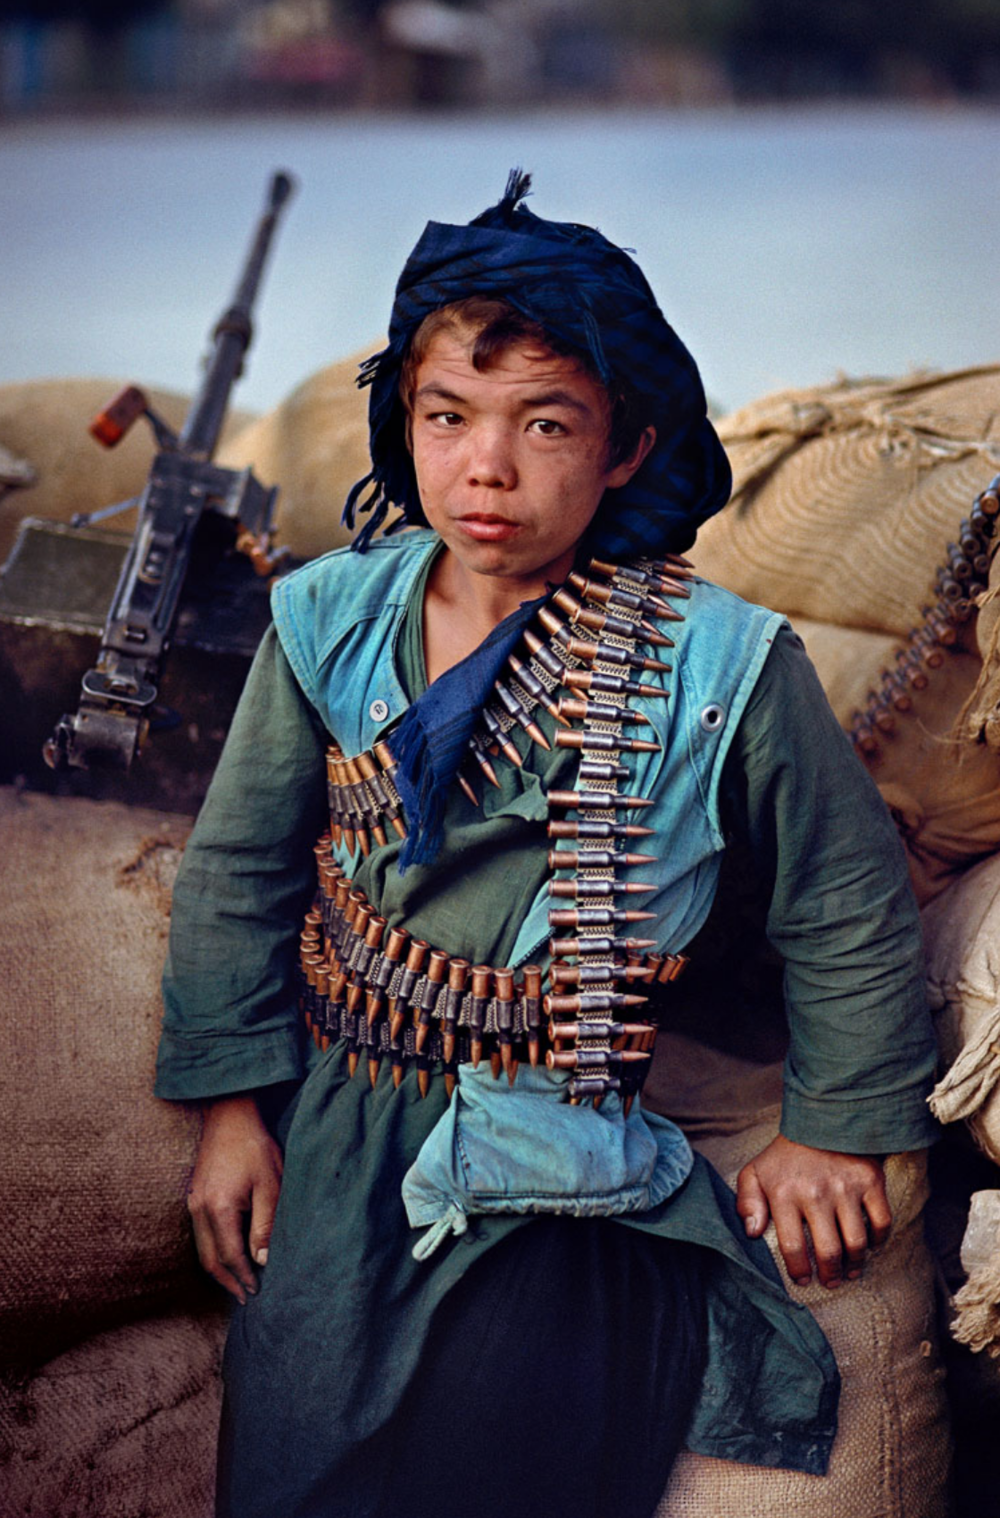 Afghani boy soldier. Photo by Steve McCurry.